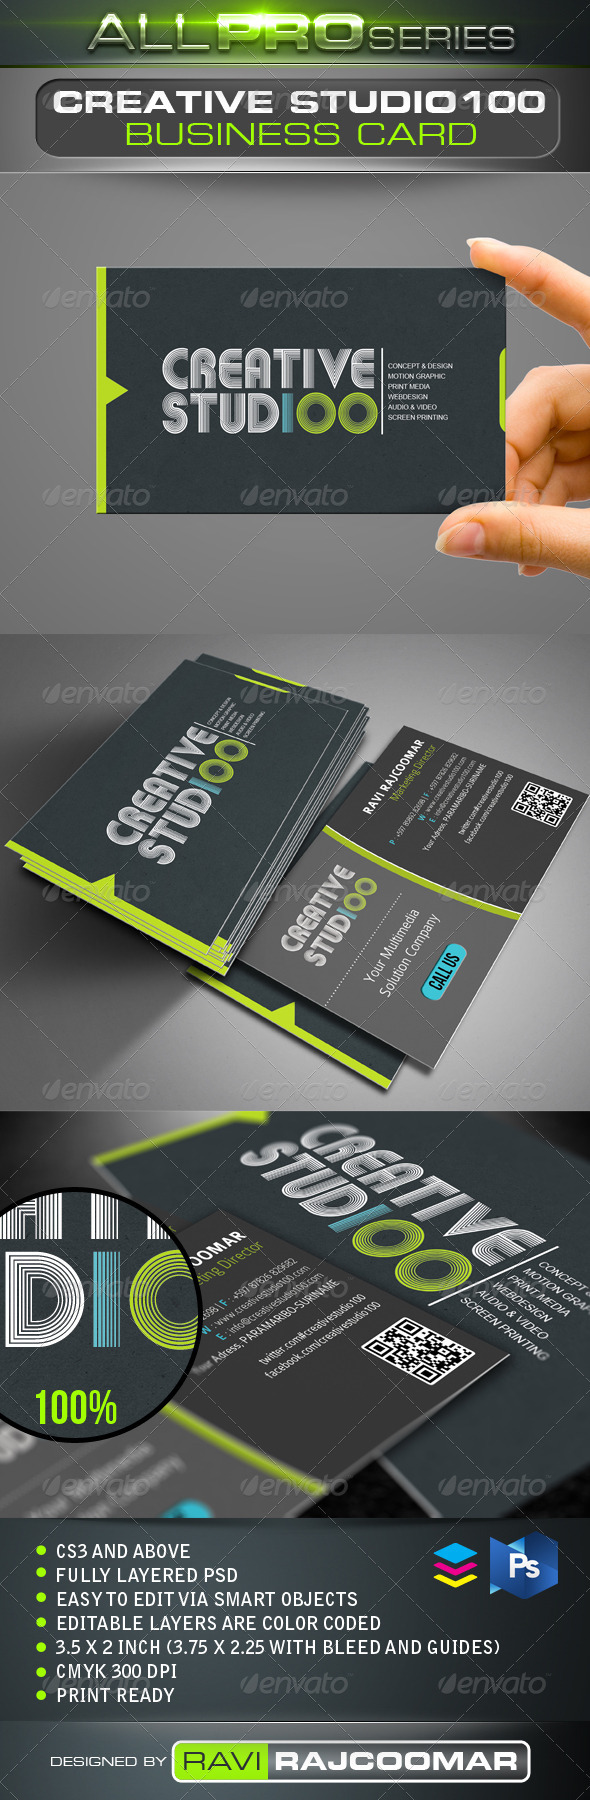 Creative Studio100 Business Card - Creative Business Cards